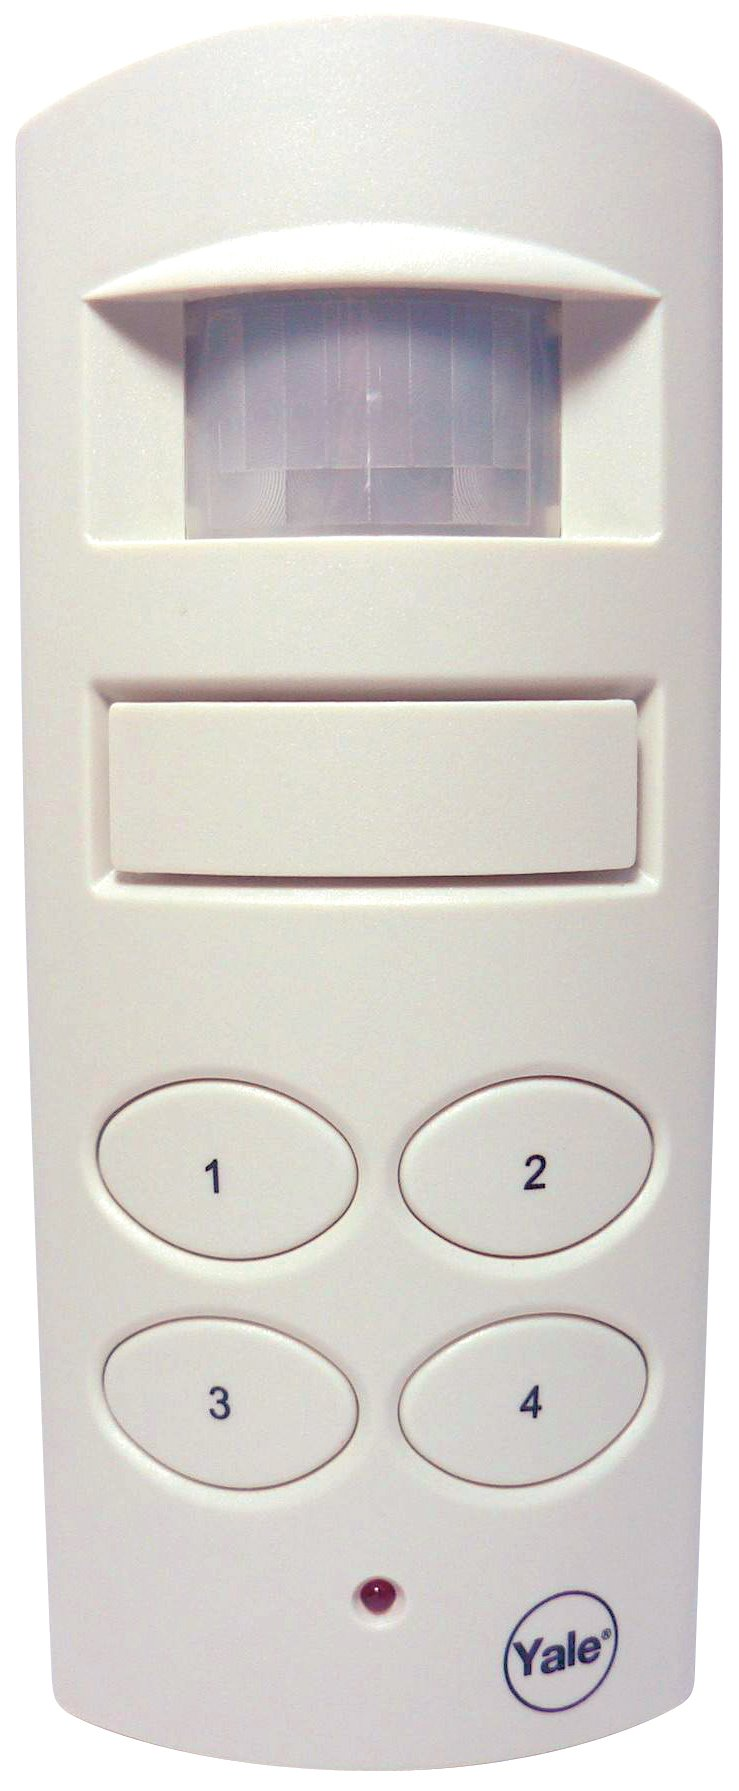 Standalone Wireless Alarms Office Amp Home Alarms Yale Asia